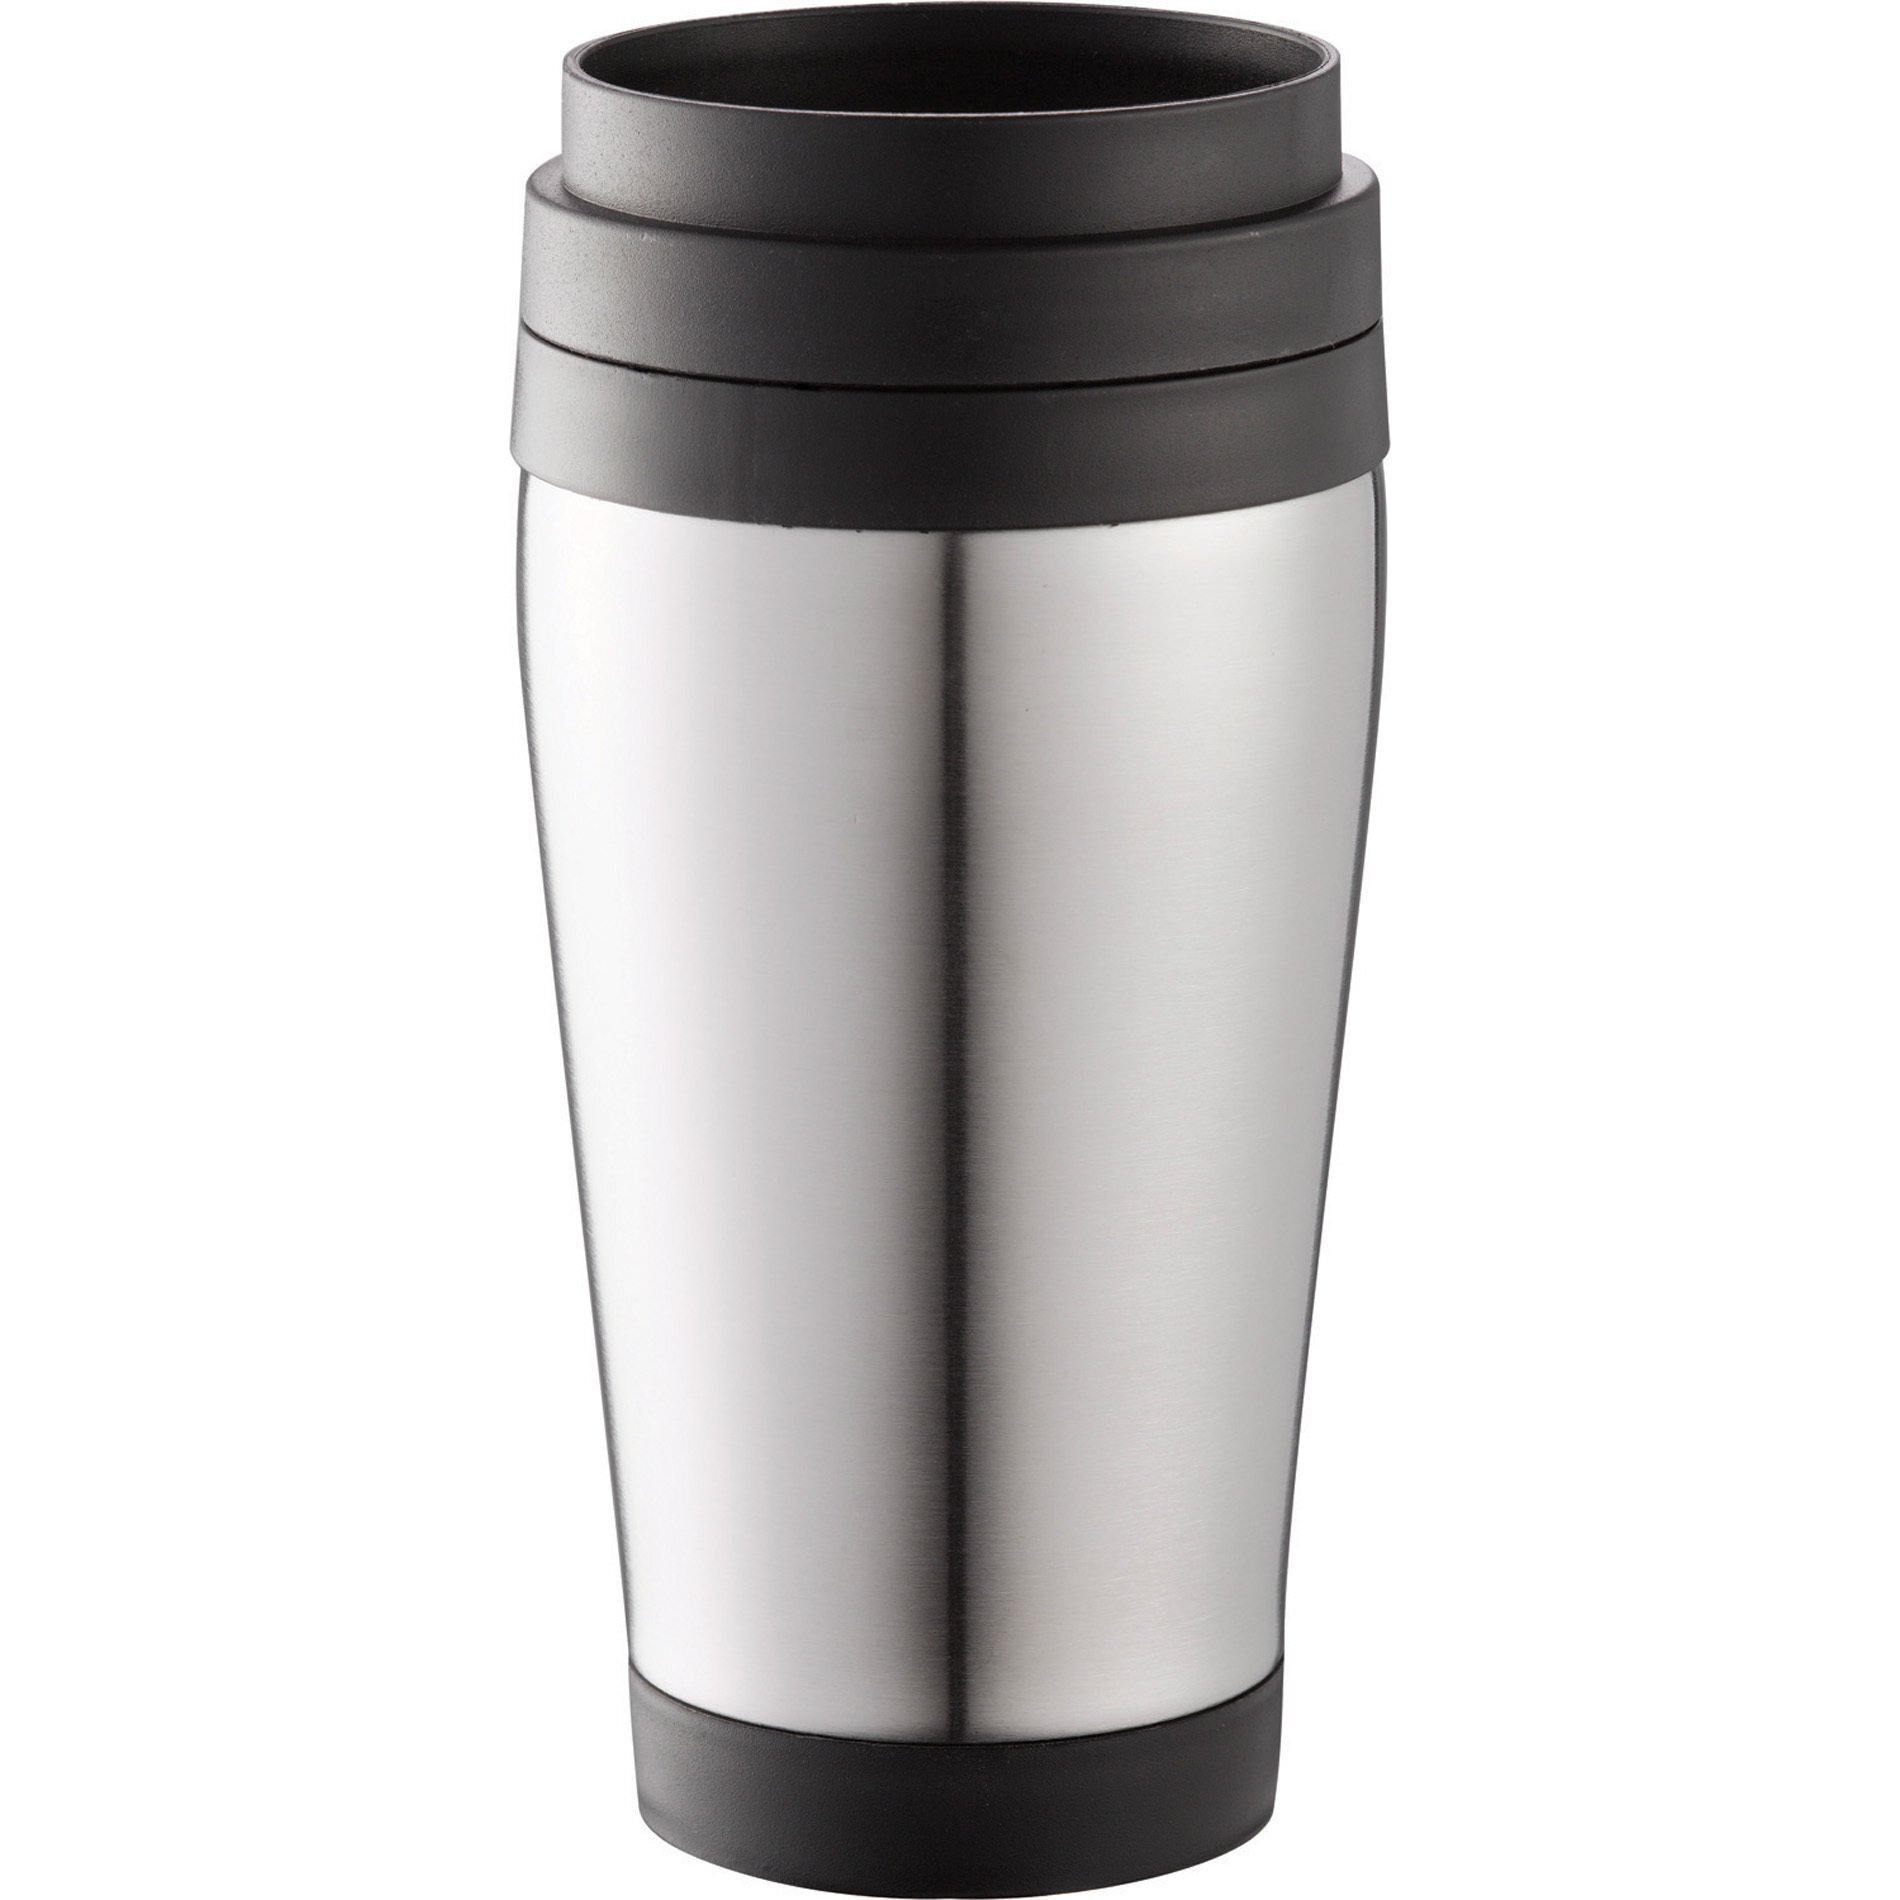 Stainless Steel Tumbler, 14oz.